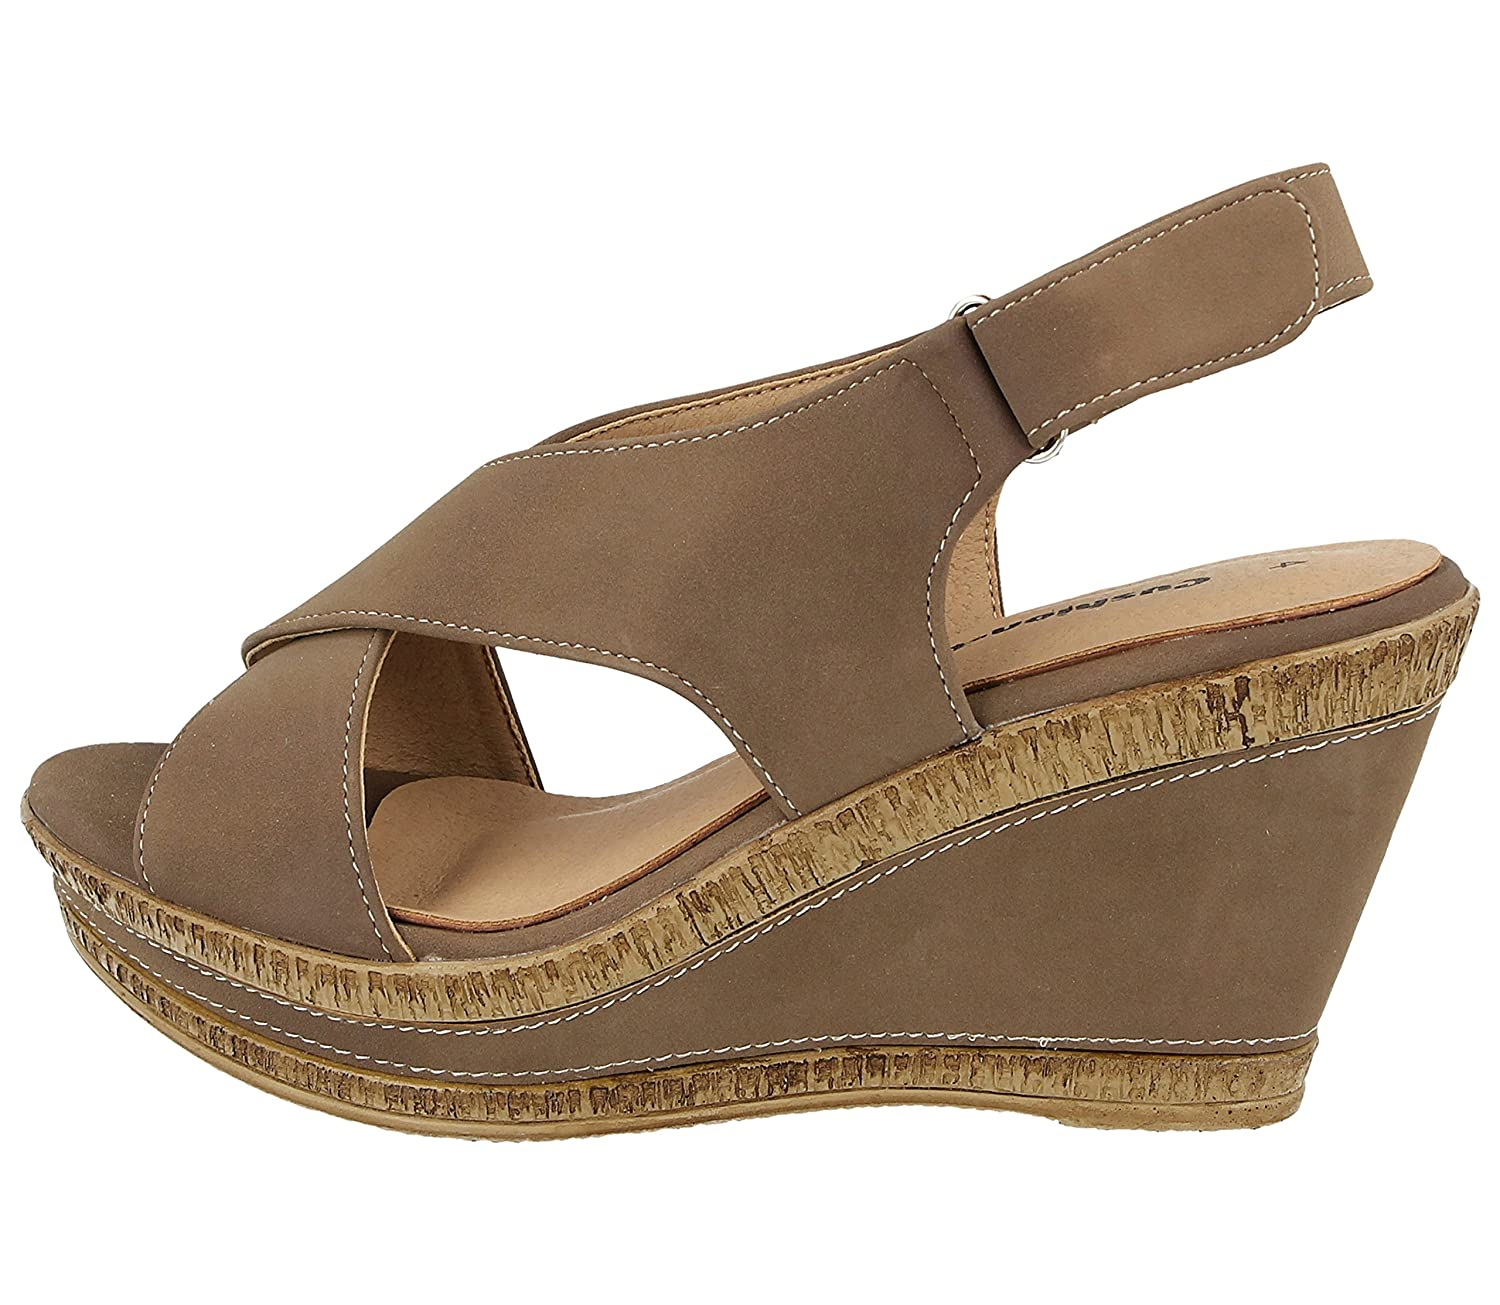 d836b9fb885cd Ladies Cushion Walk Wide E Fit Leather Lined Wedge Peep Toe Strappy Summer  Sandal Size 3-8